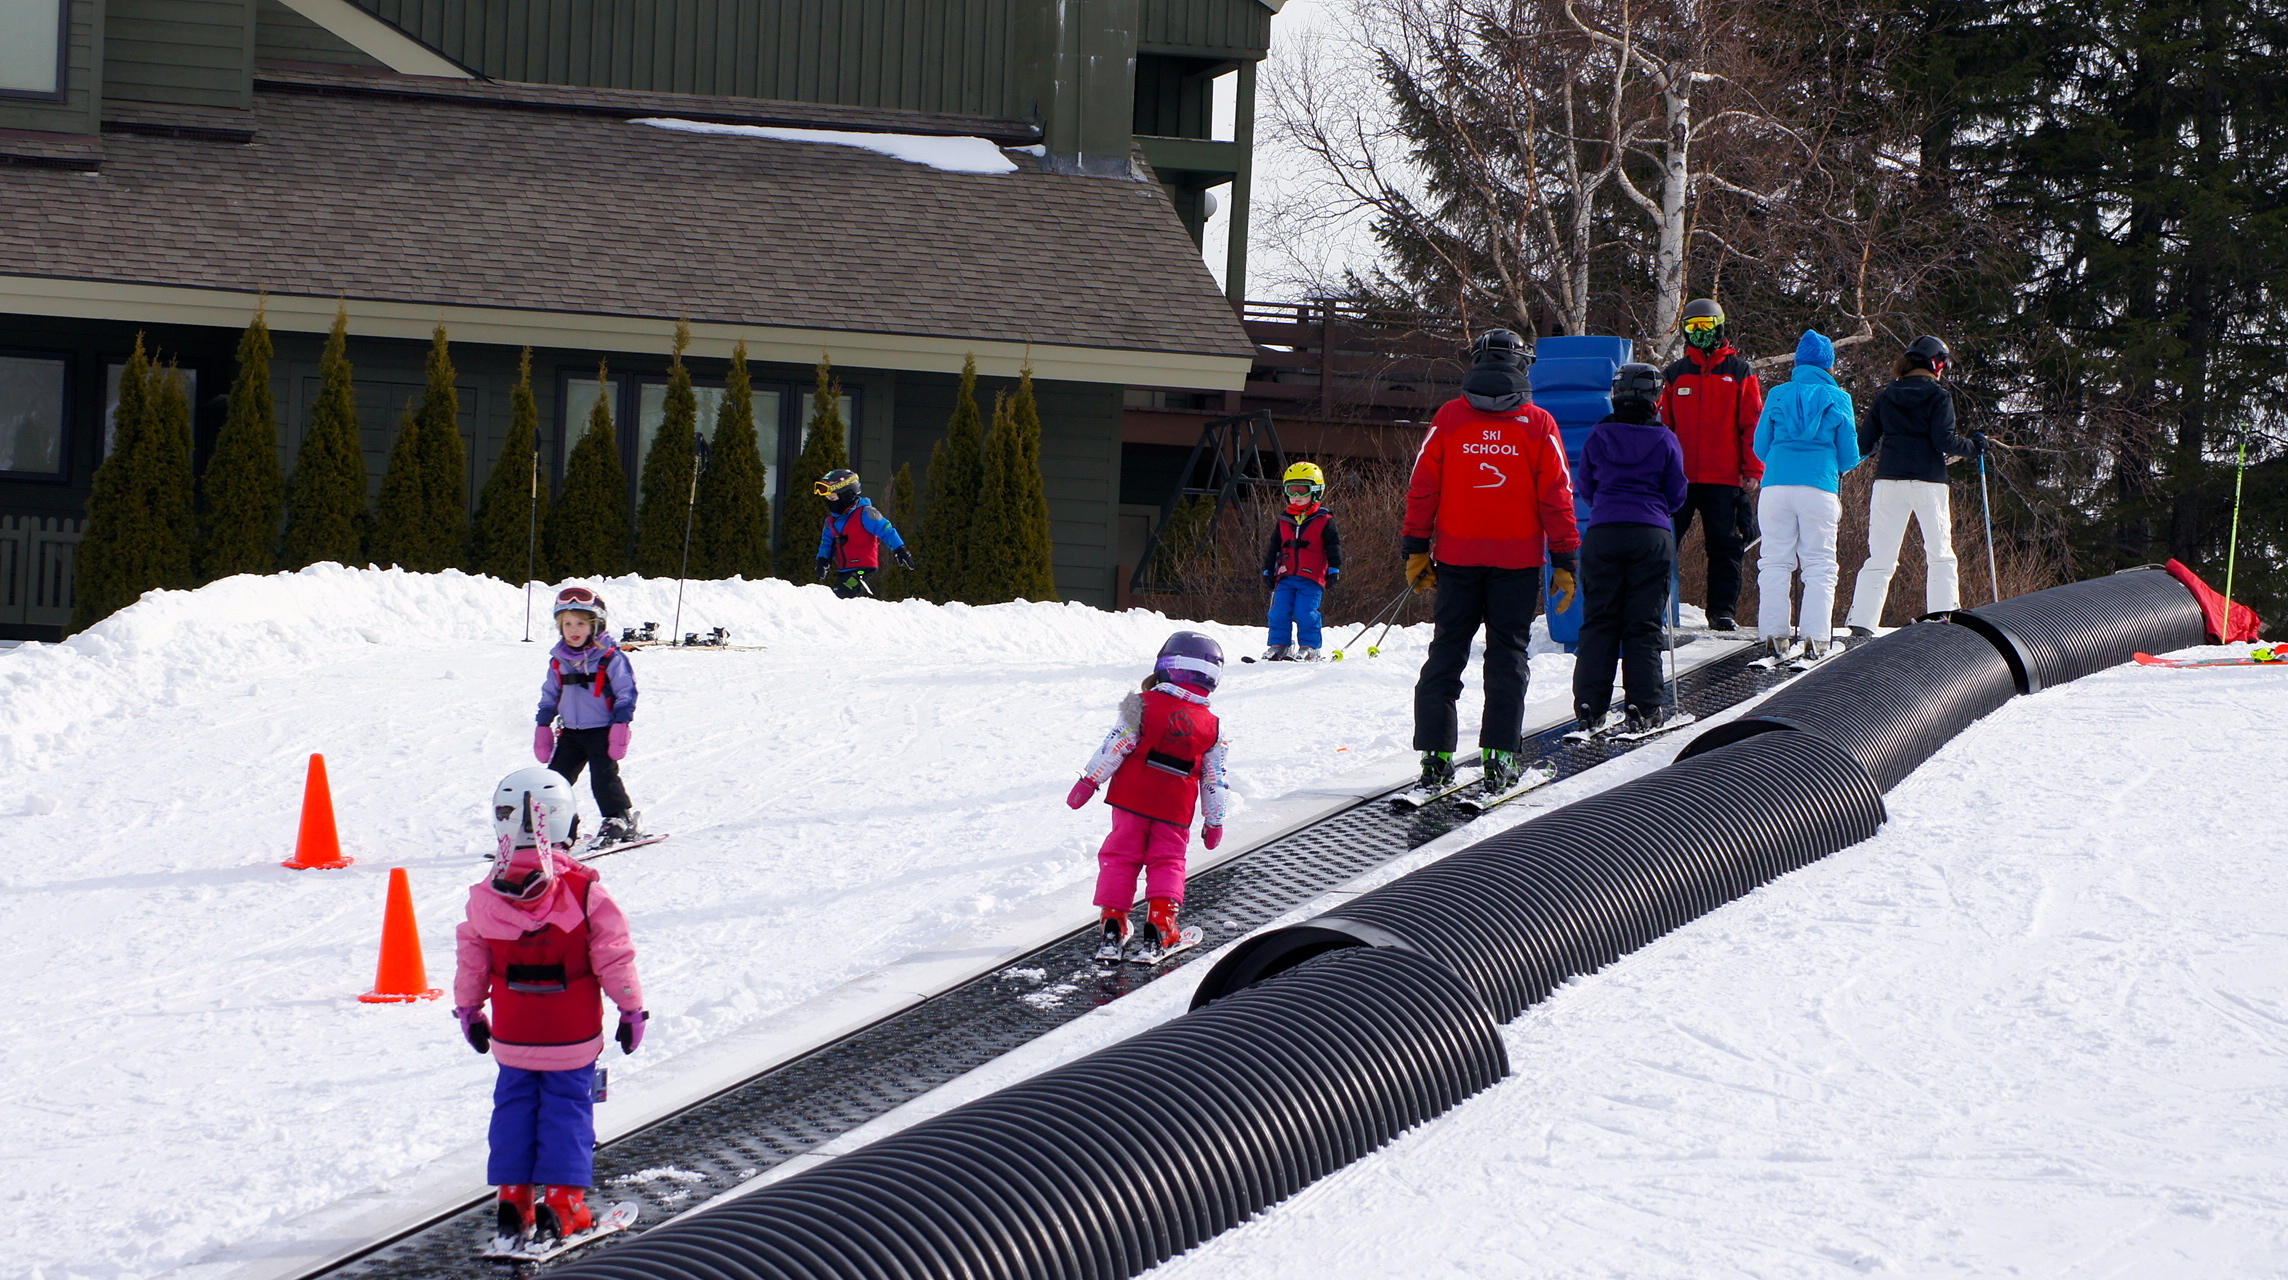 Ski School at Stratton